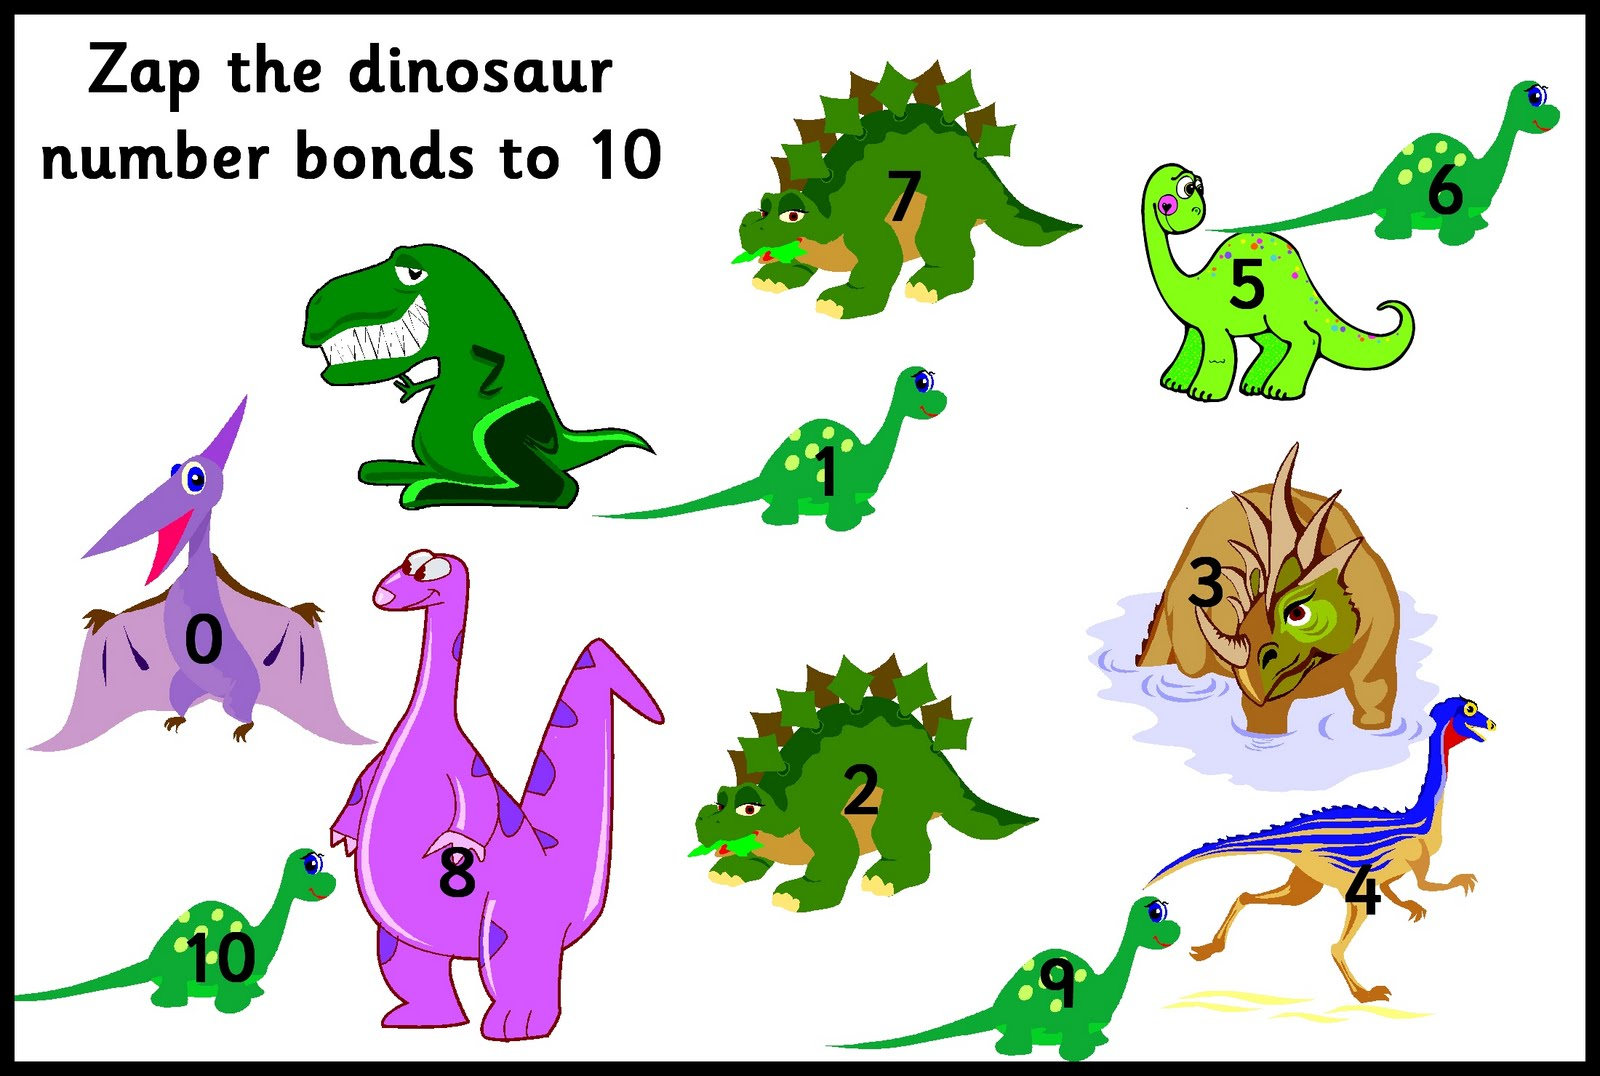 worksheet Number Bonds To 10 debbies resource cupboard zap the dinosaur number bonds to 10 10